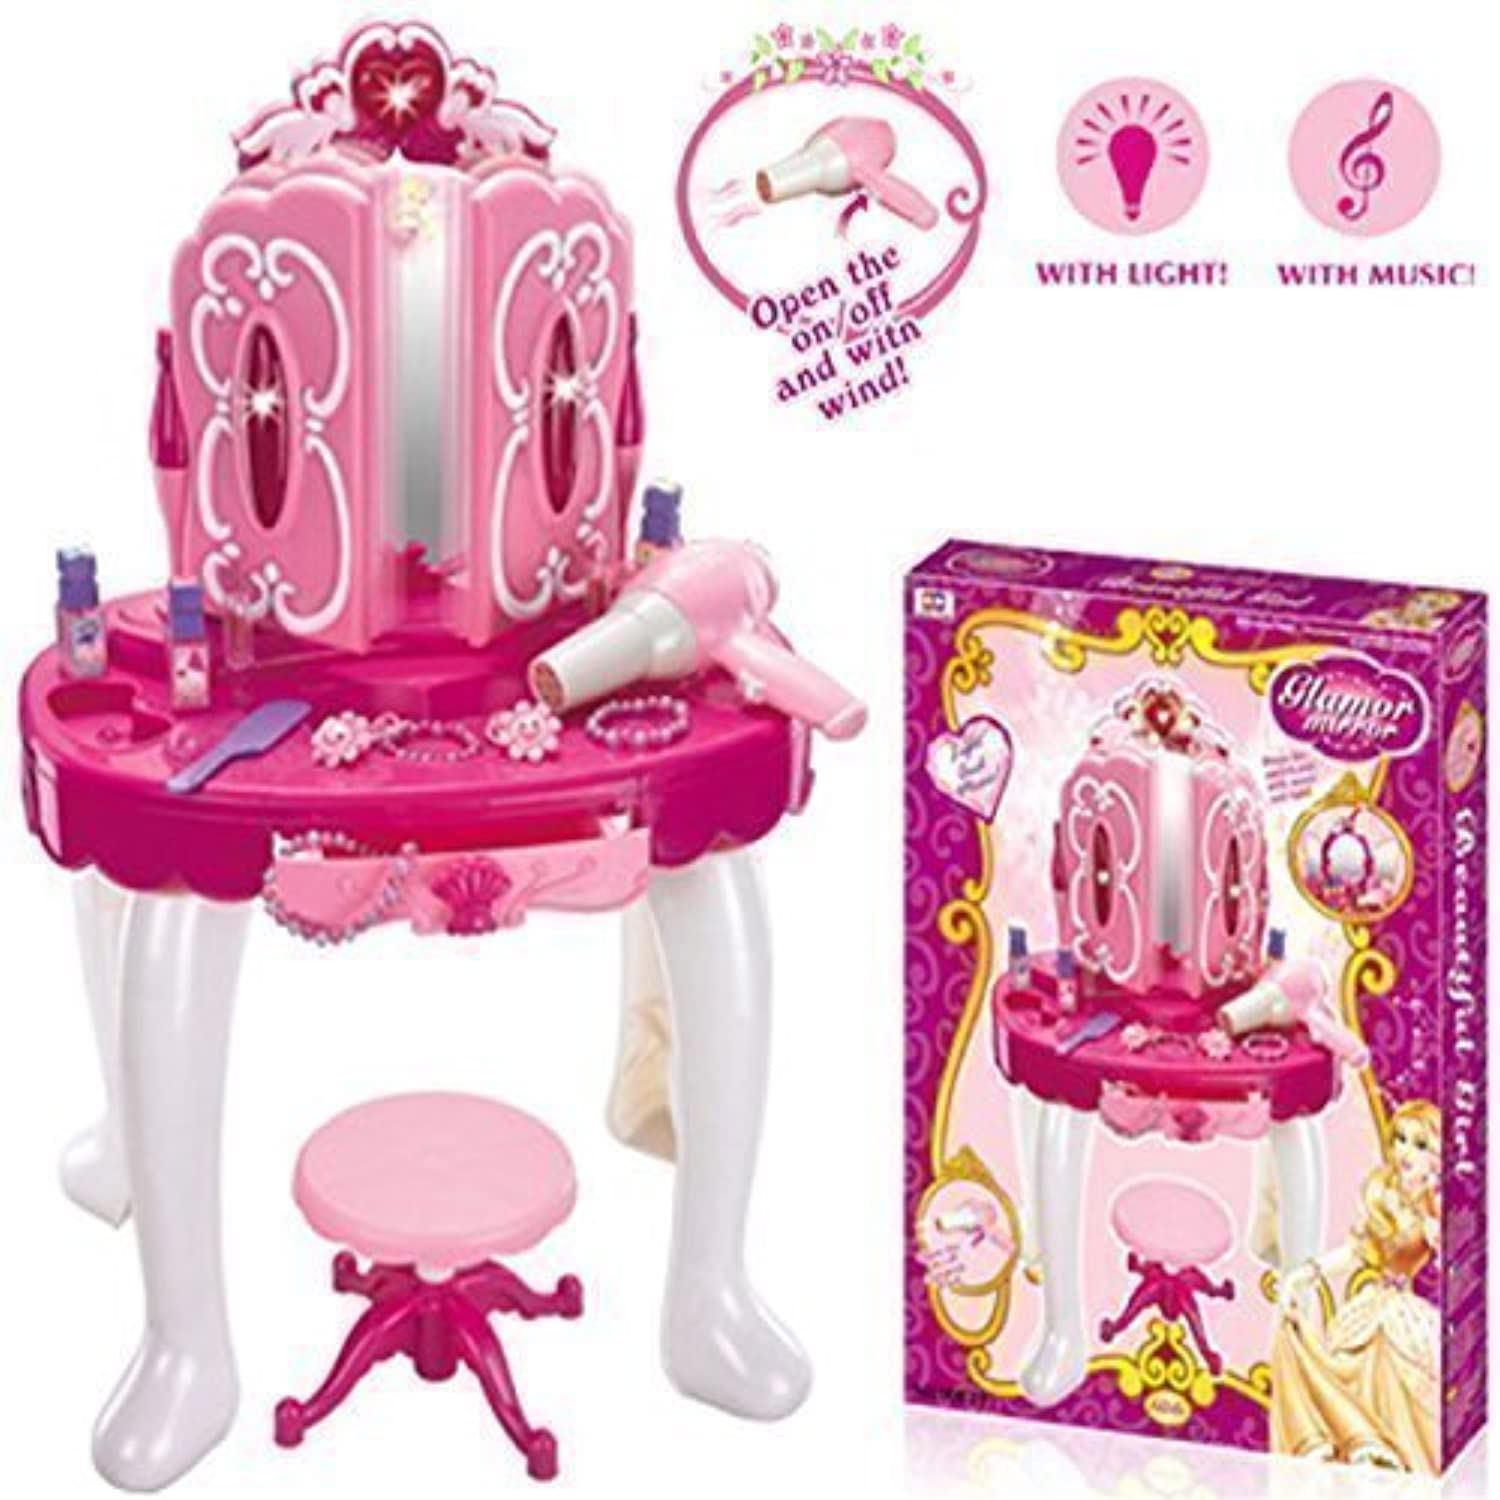 Brand New Girls Pink Musical Dressing Table Vanity Light Mirror Play Set Toy Glamour Make Up Desk With Stool Great XMAS Fun.